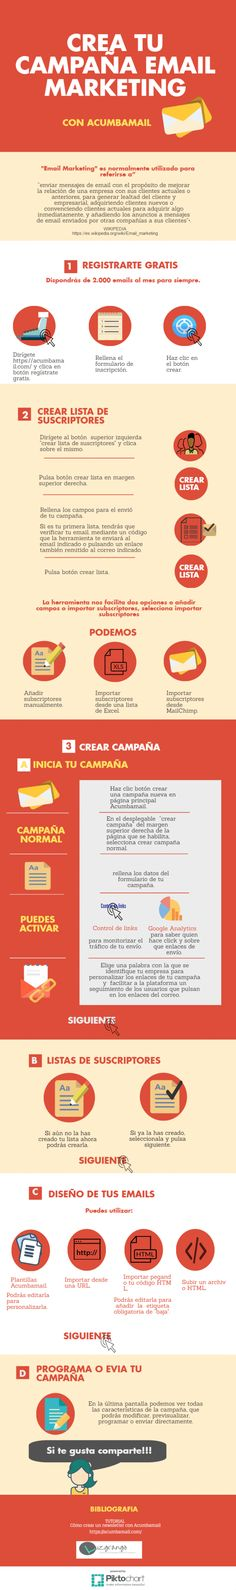 Crear tu campaña Email Marketing con Acumbamail